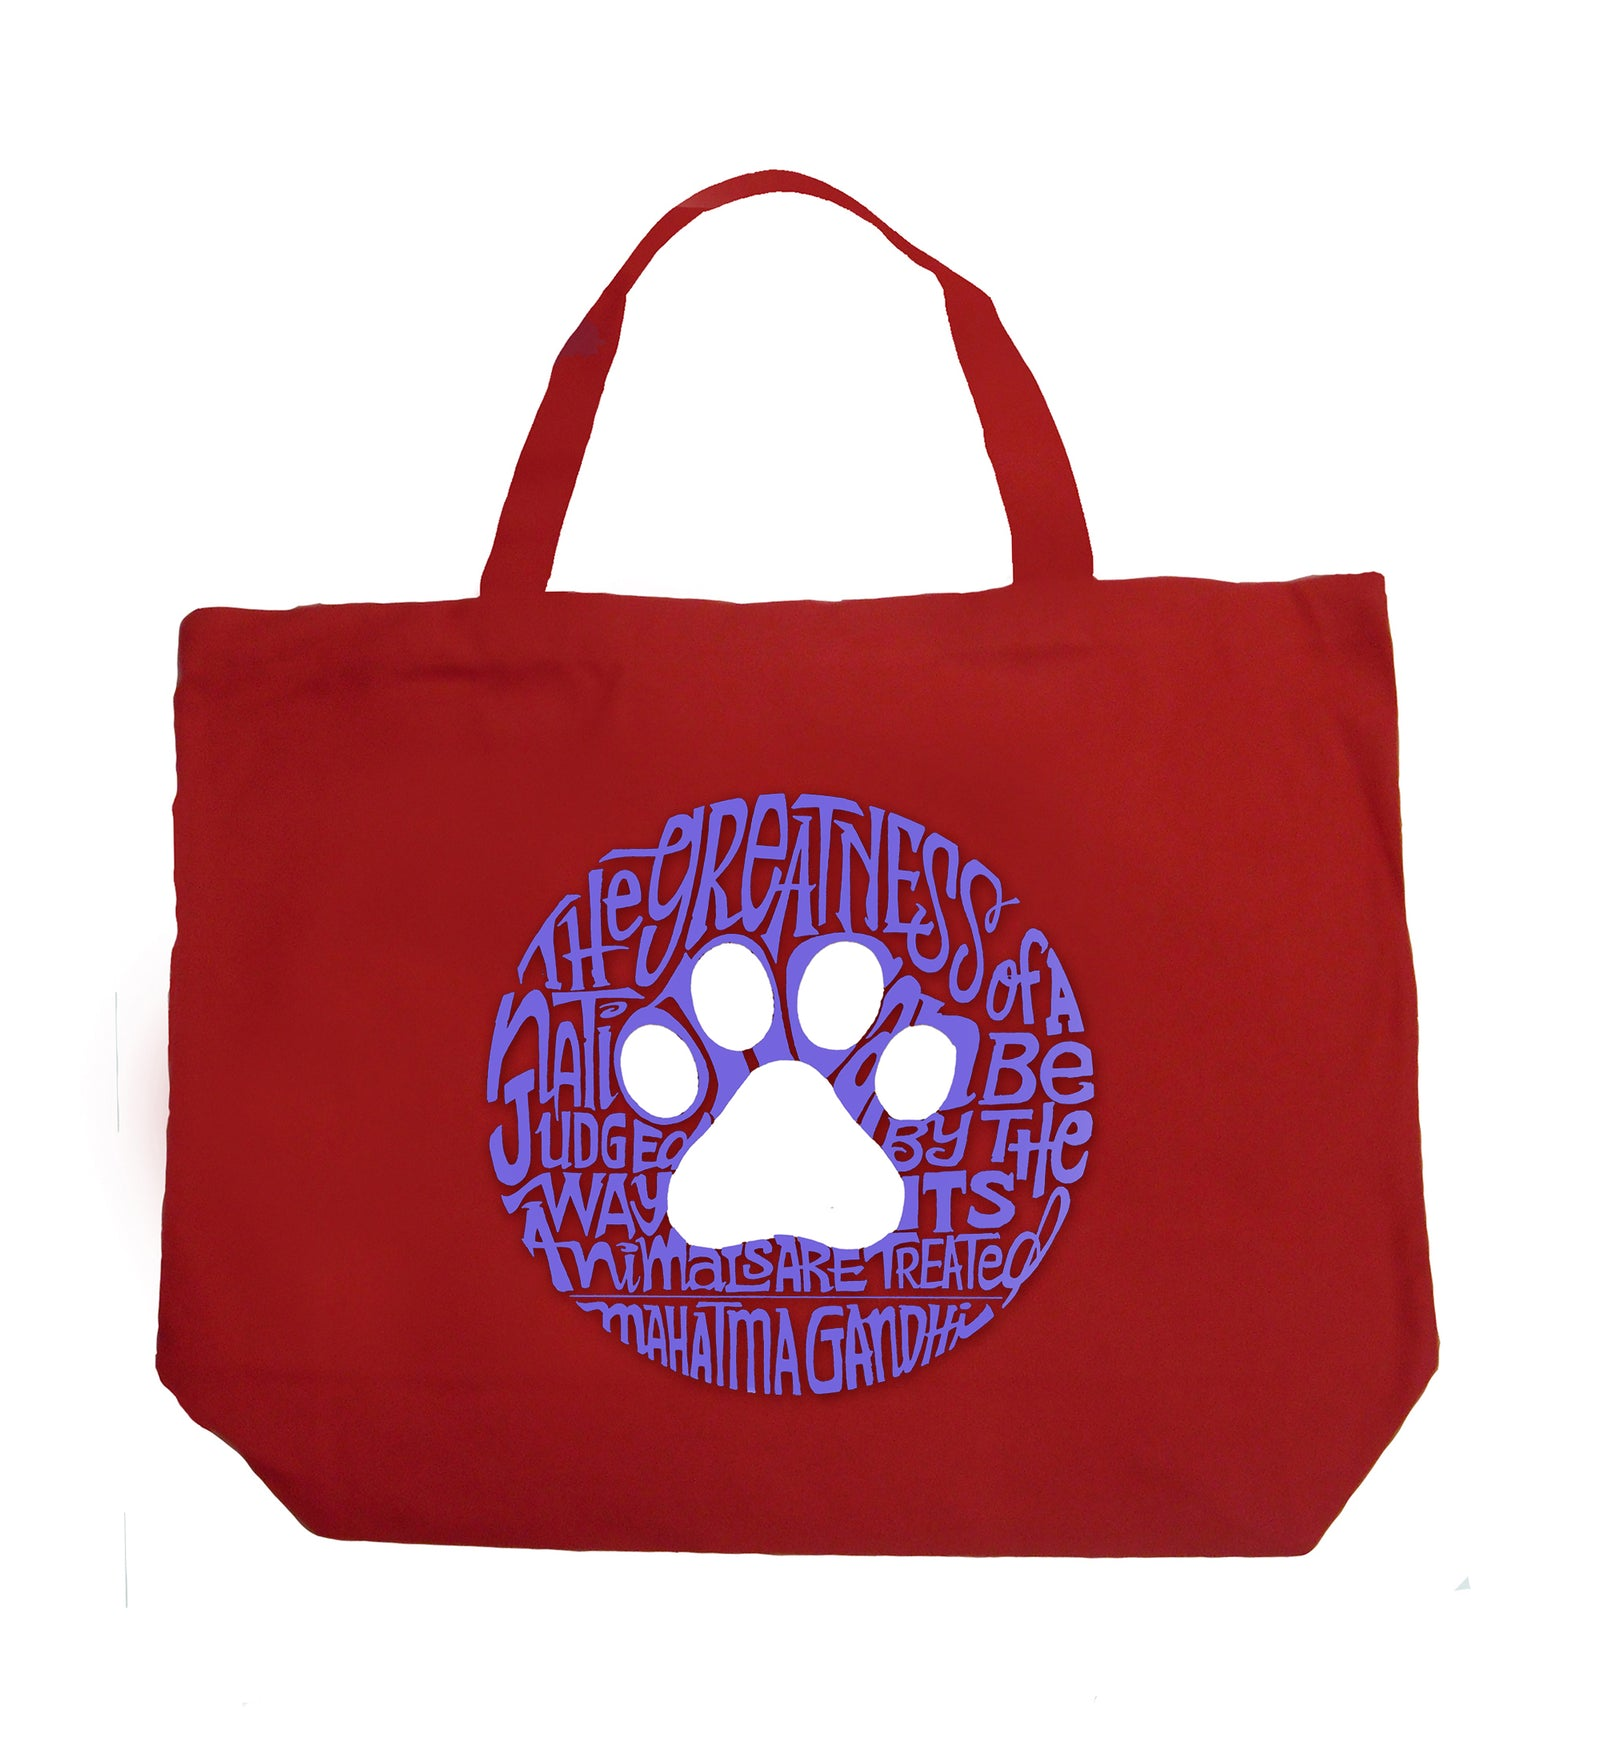 Large Word Art Tote Bag - Gandhi's Quote on Animal Treatment